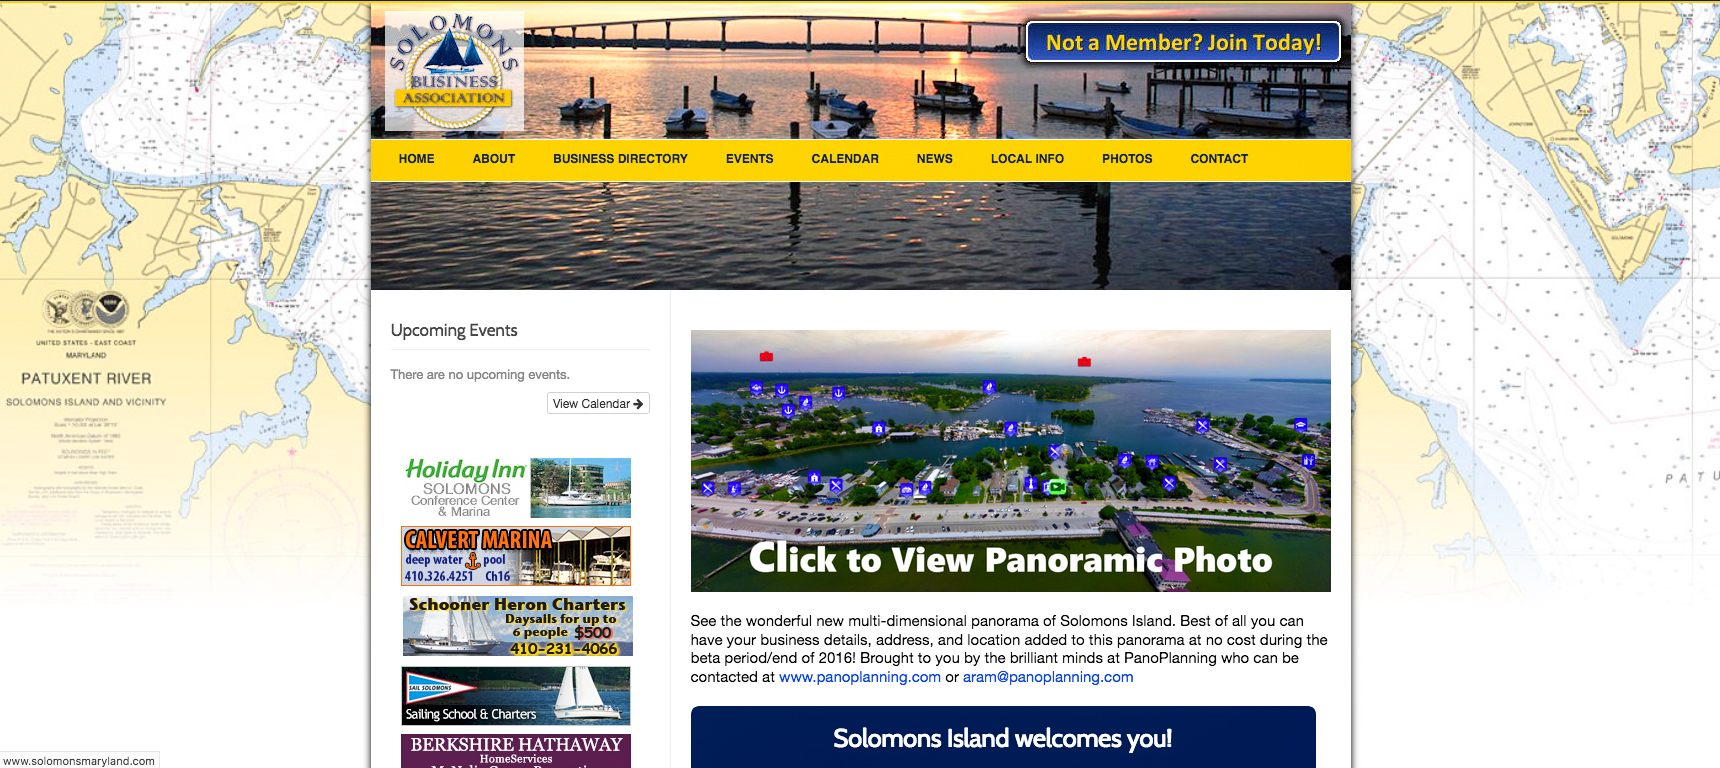 Solomons Business Association Website